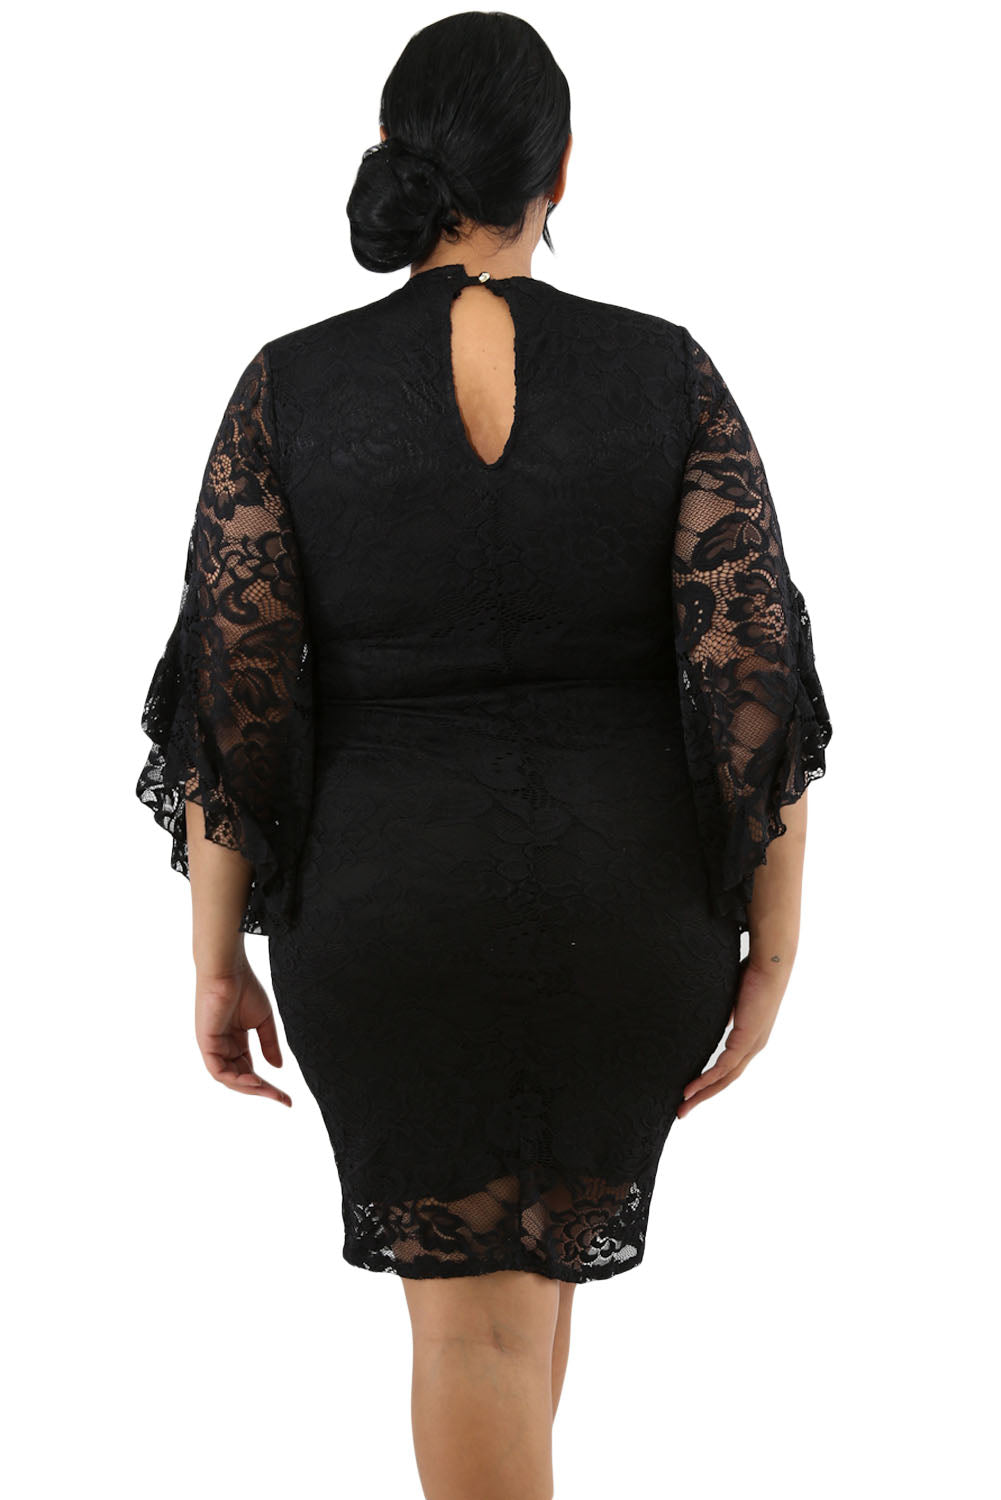 Black Lace Flare Bells Bodycon Plus Size Dress LAVELIQ - Laveliqus